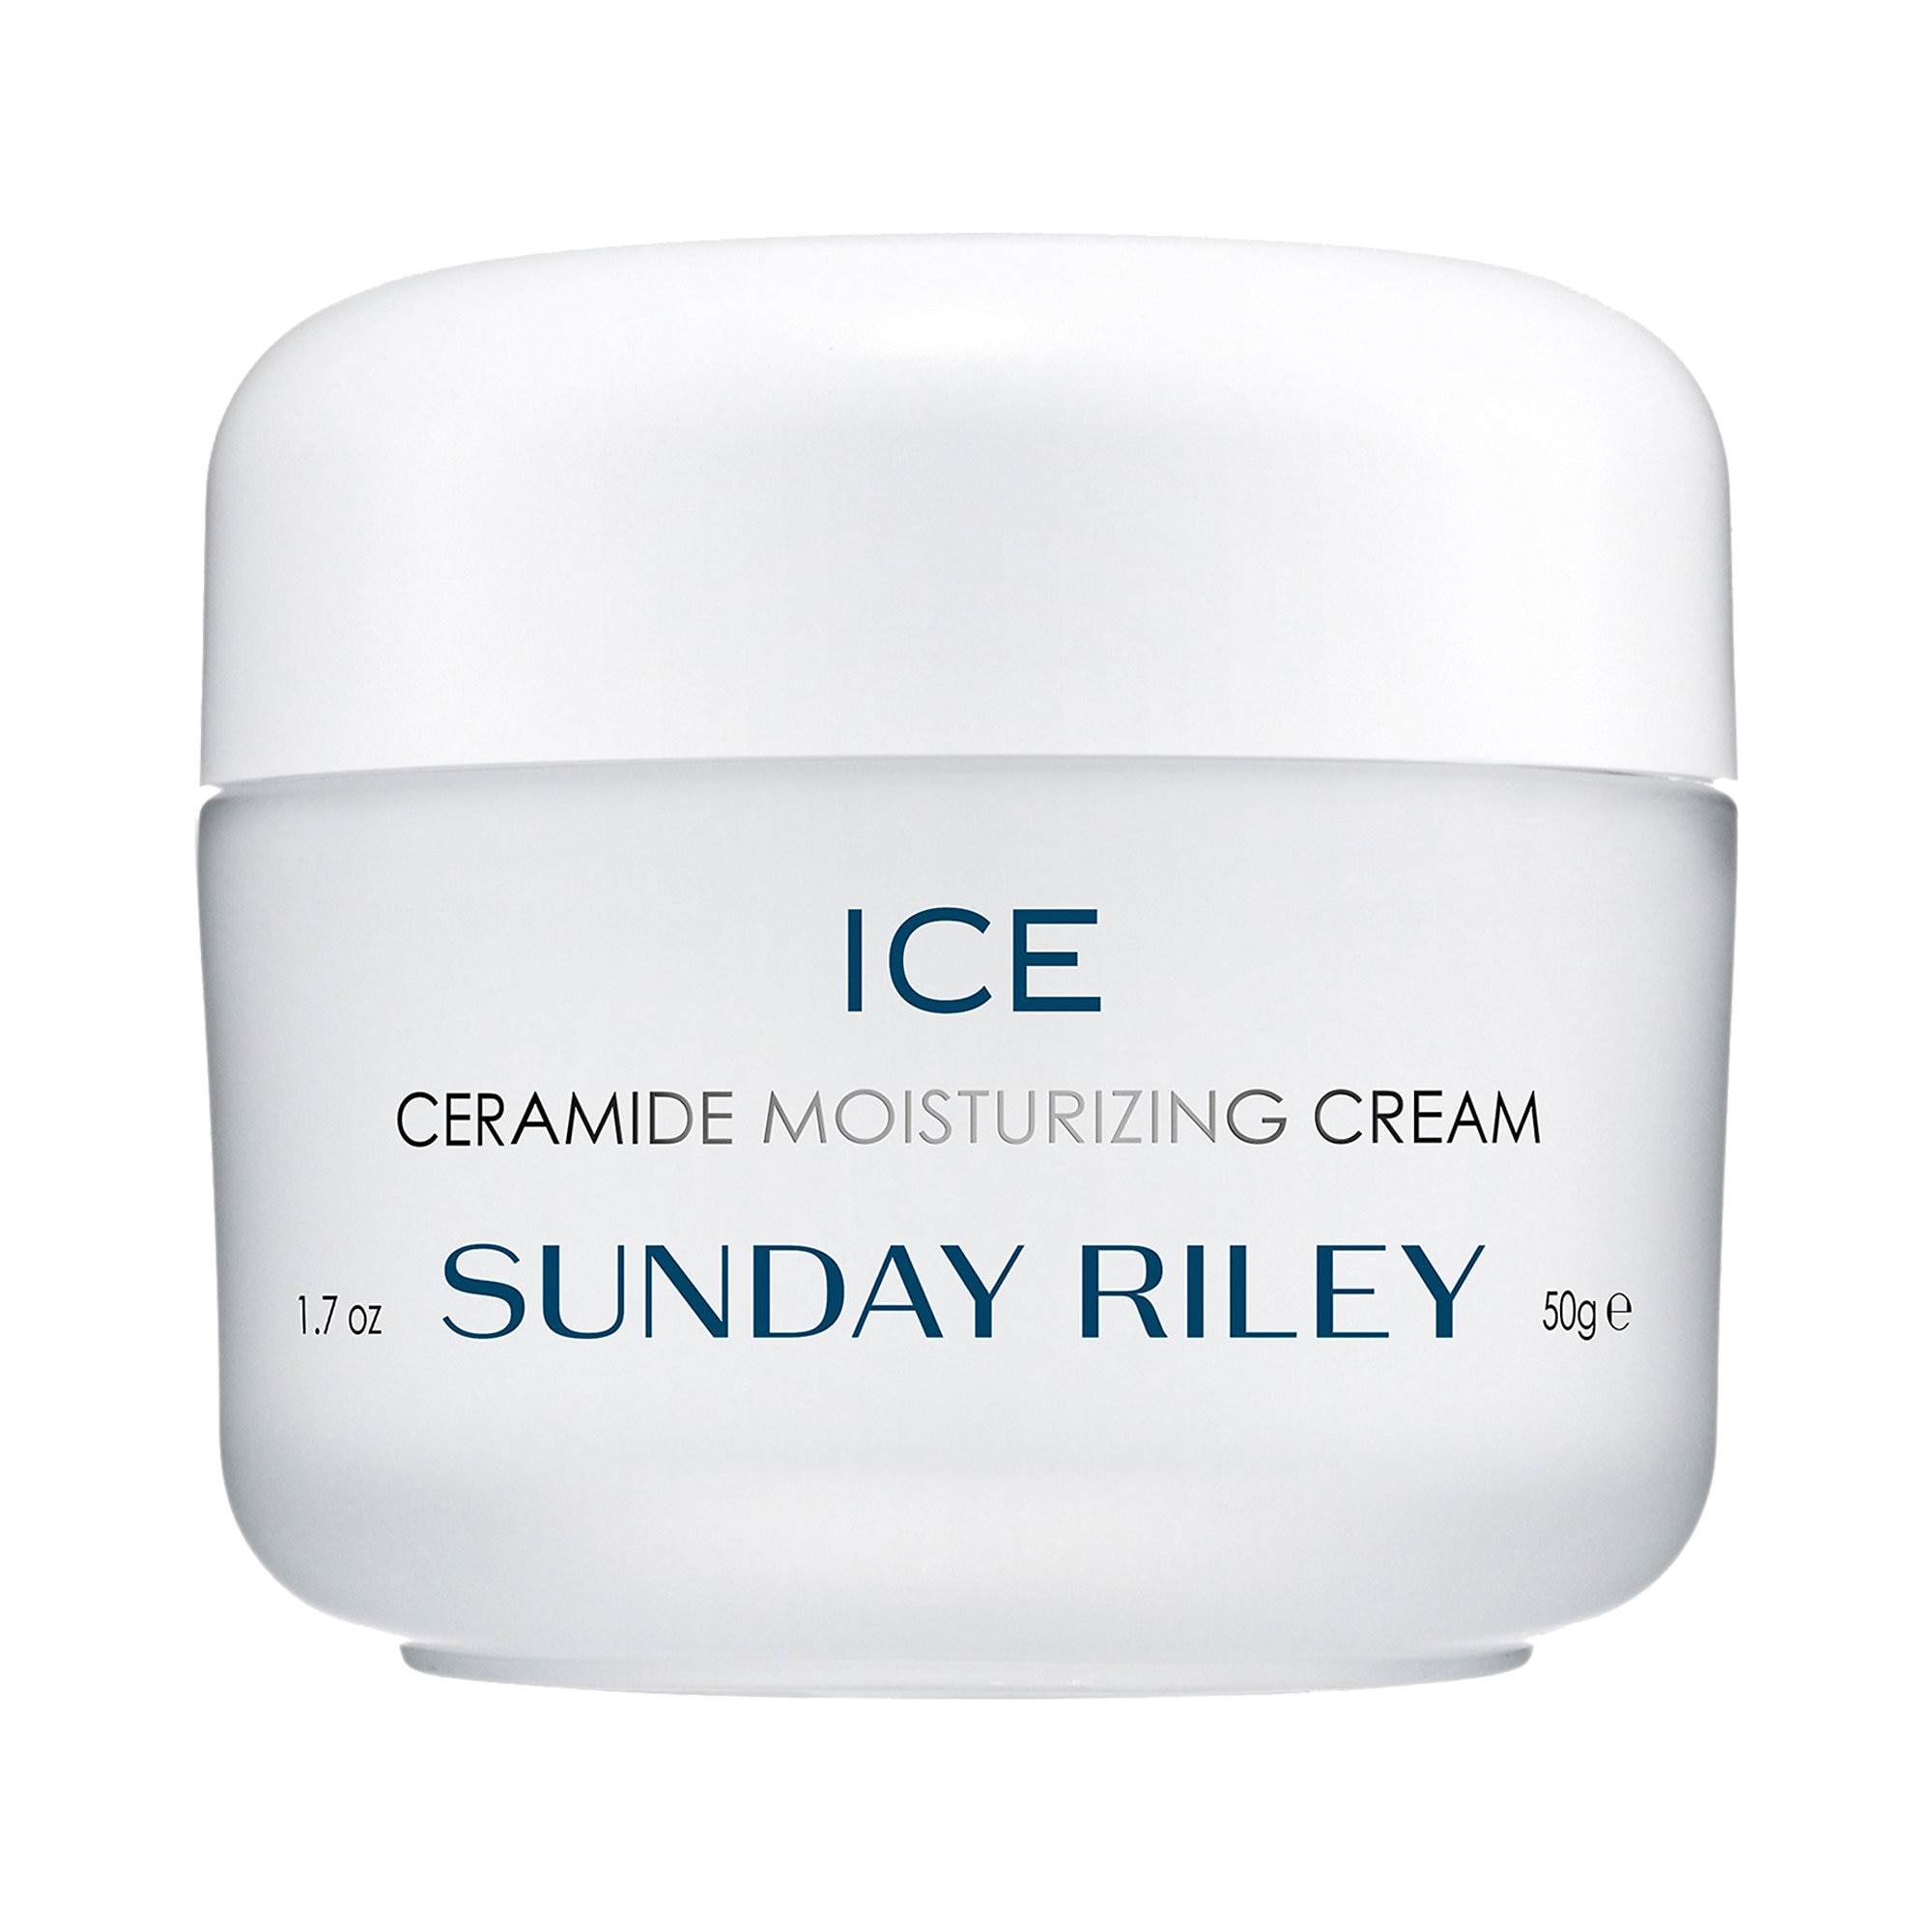 Sunday Riley - ICE Ceramide Moisturizing Cream